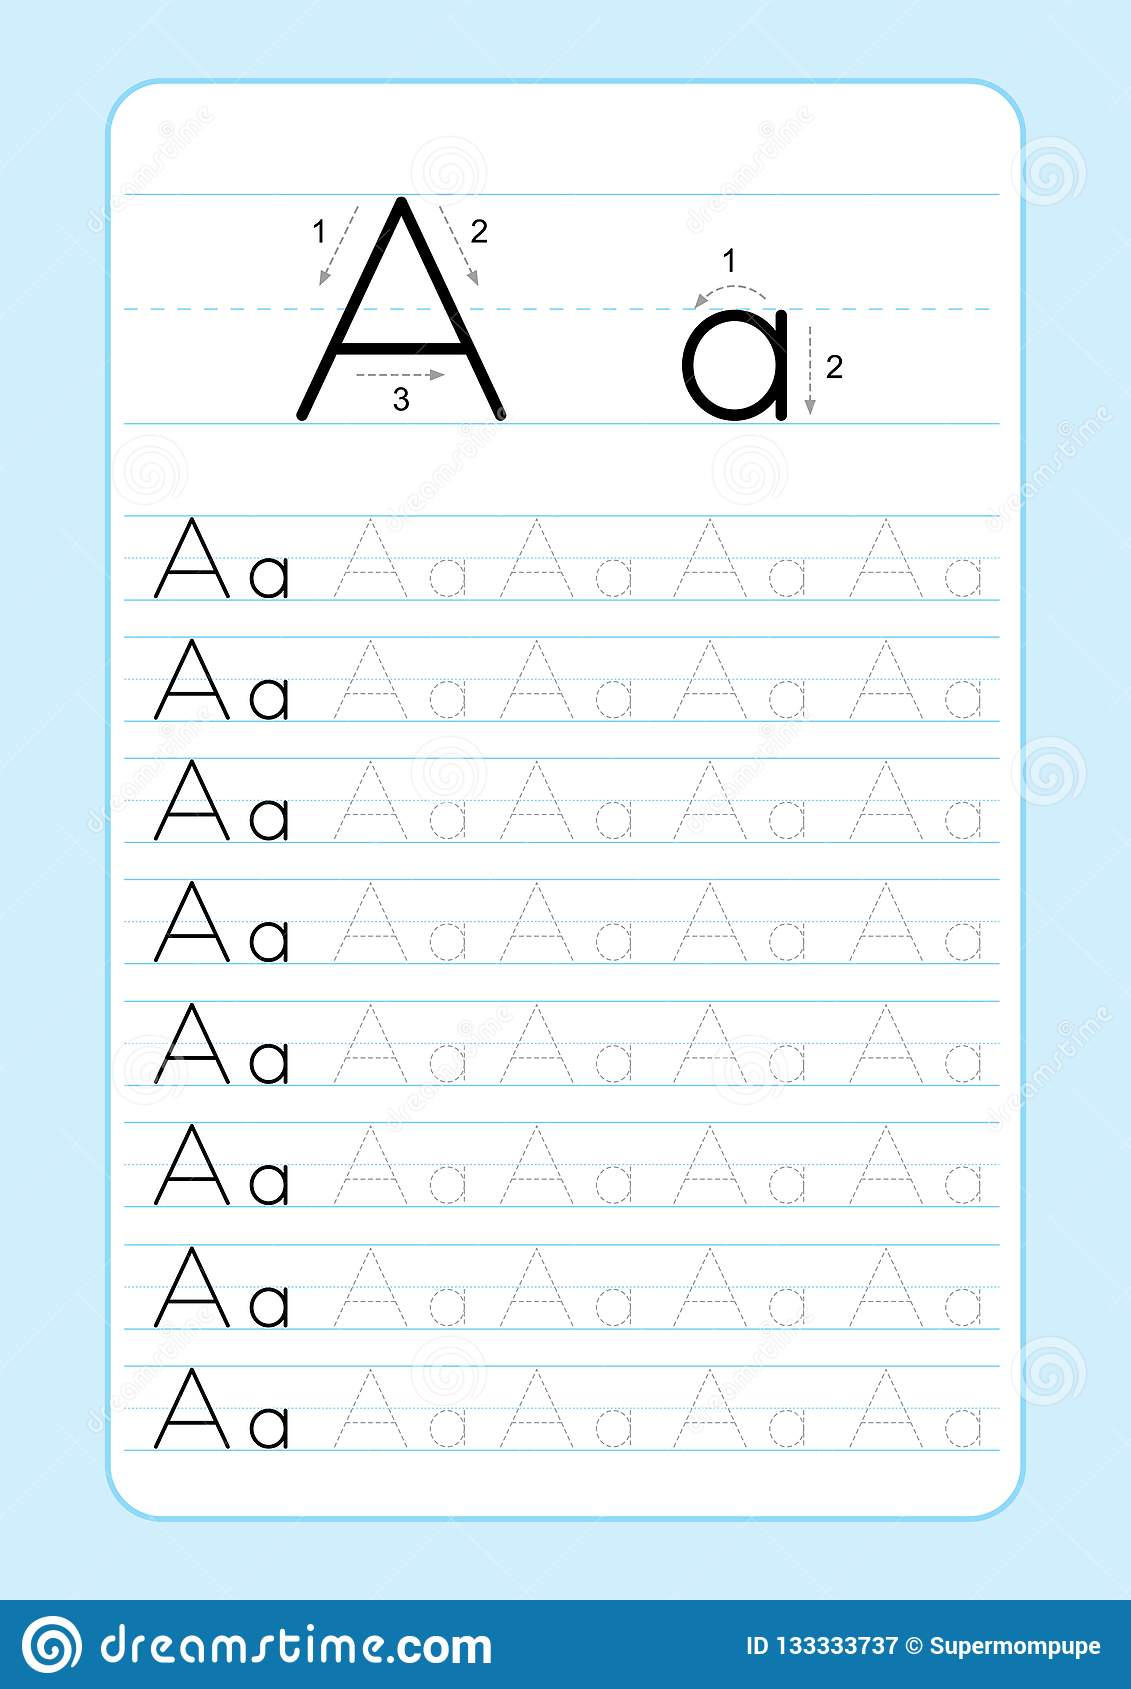 Blank Abc Order Worksheet